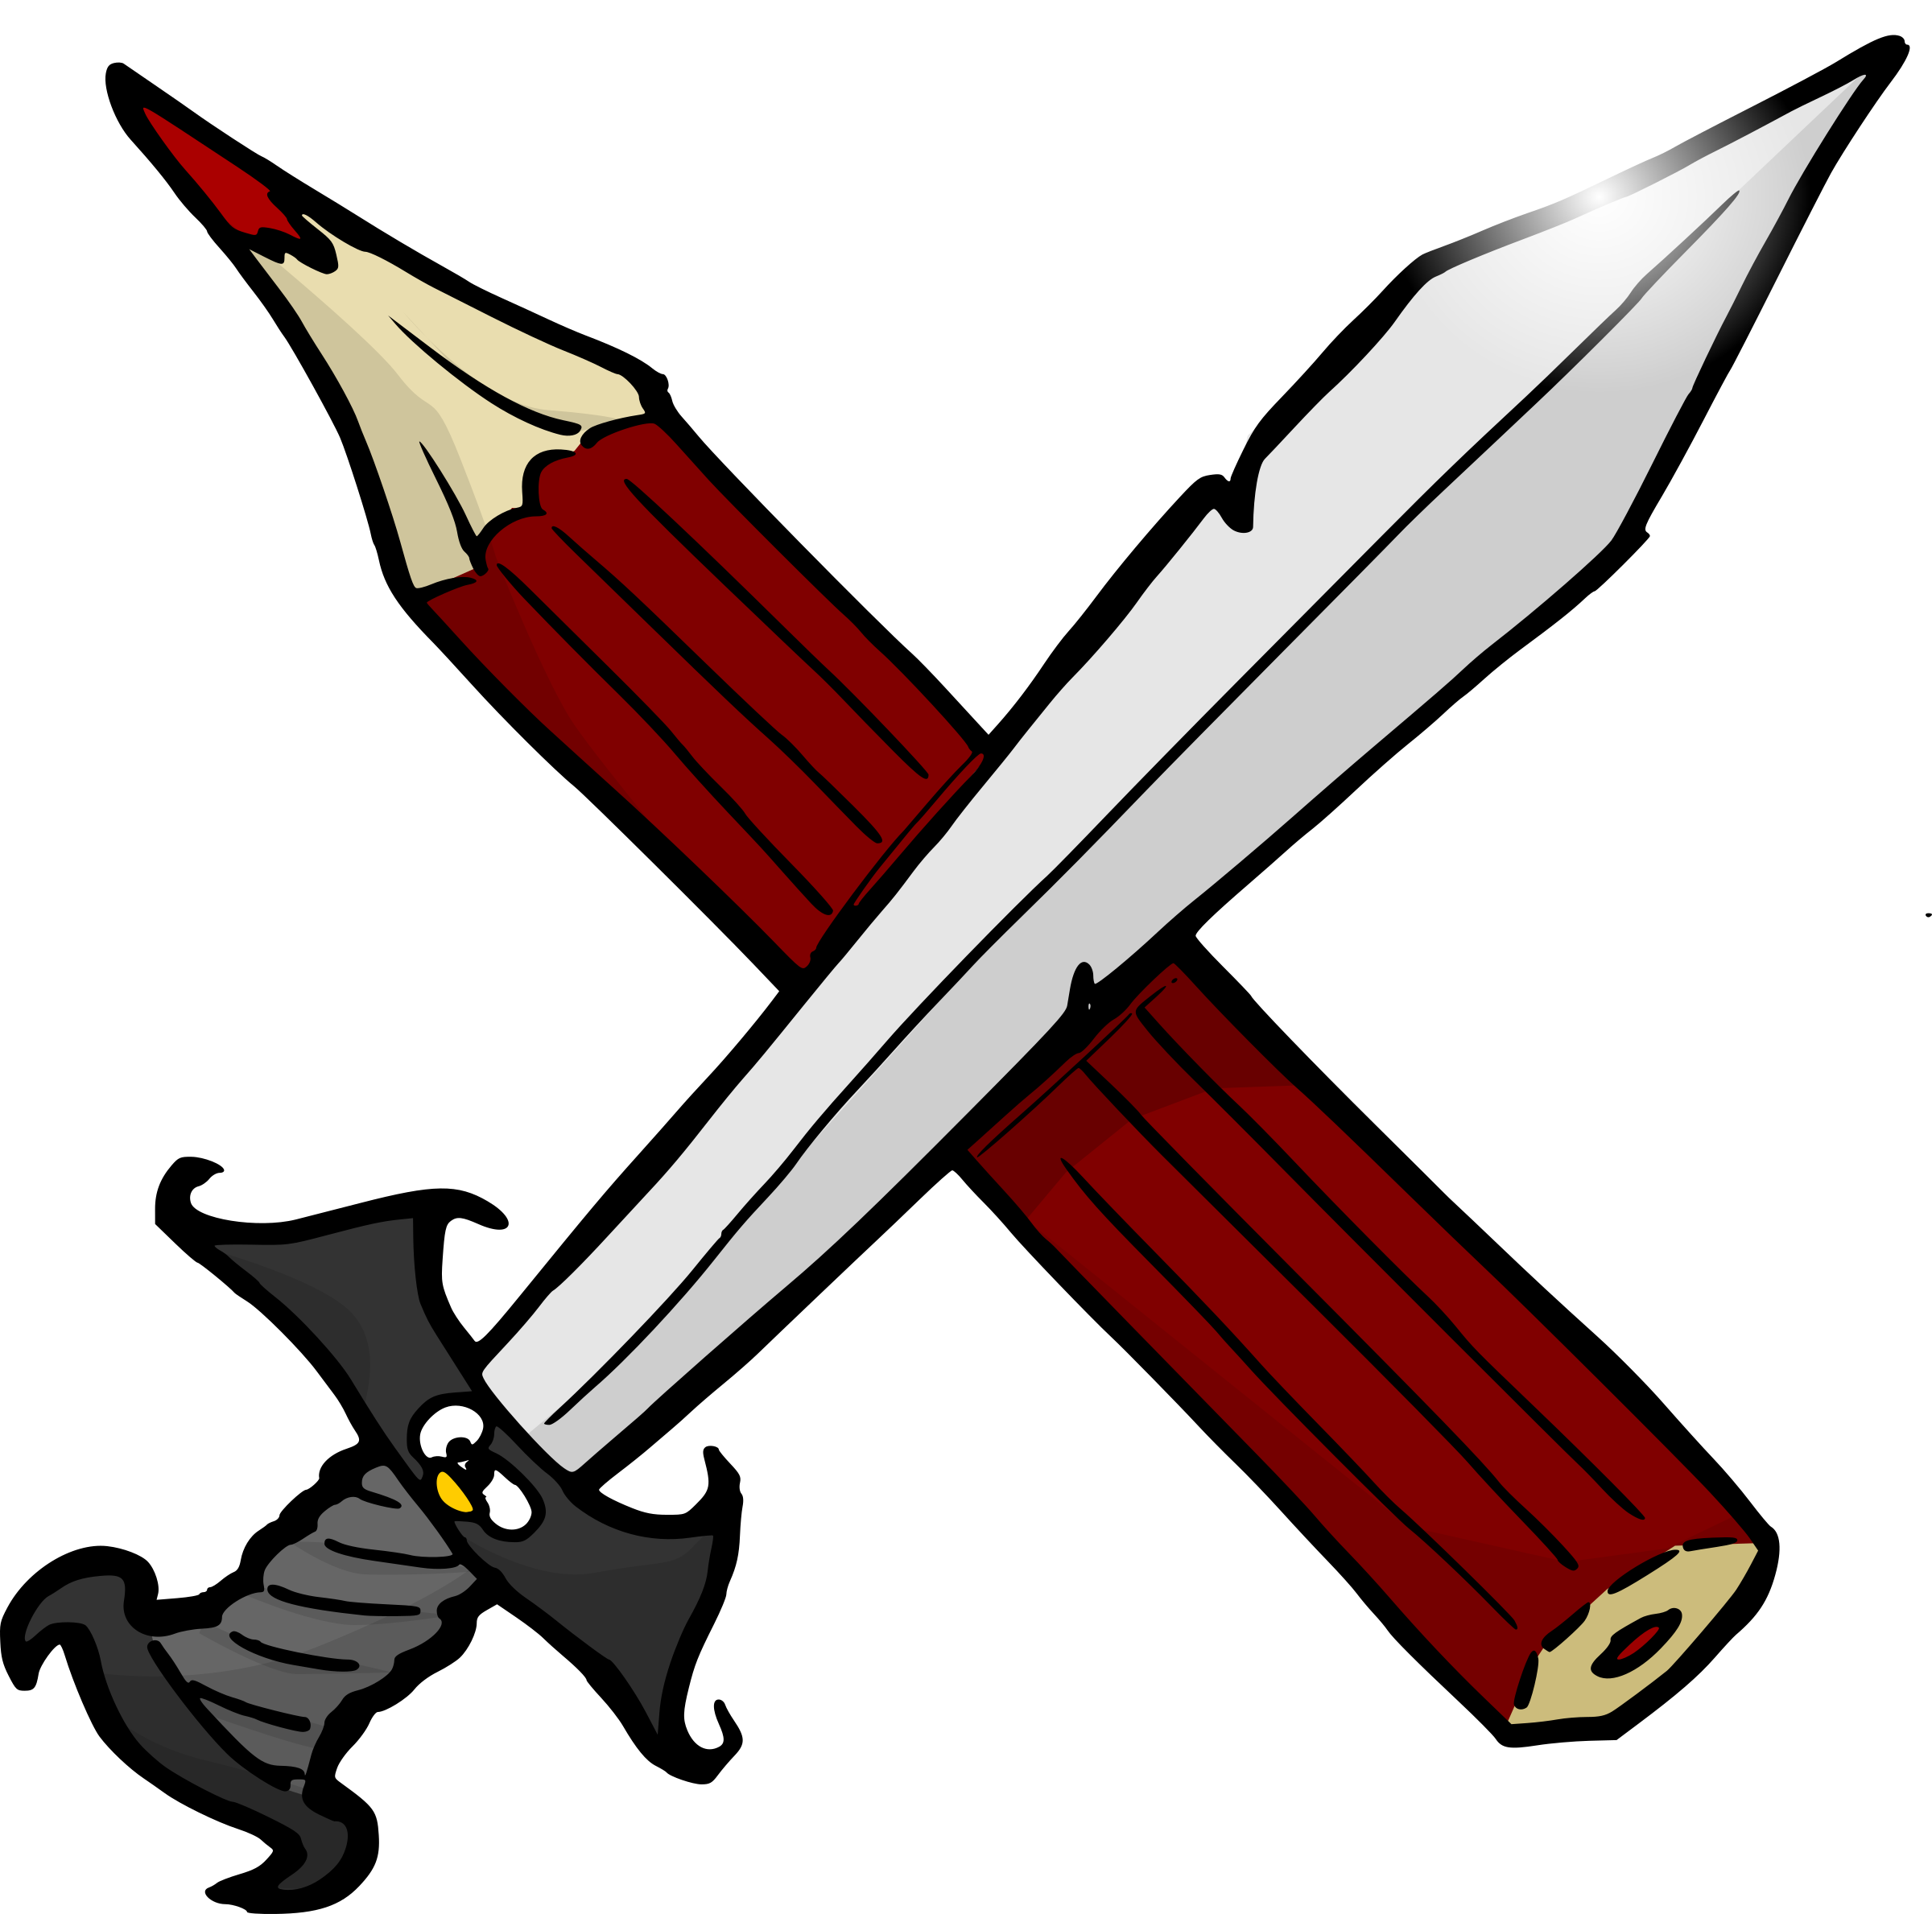 png transparent download Sword and big image. Writer clipart pencil.